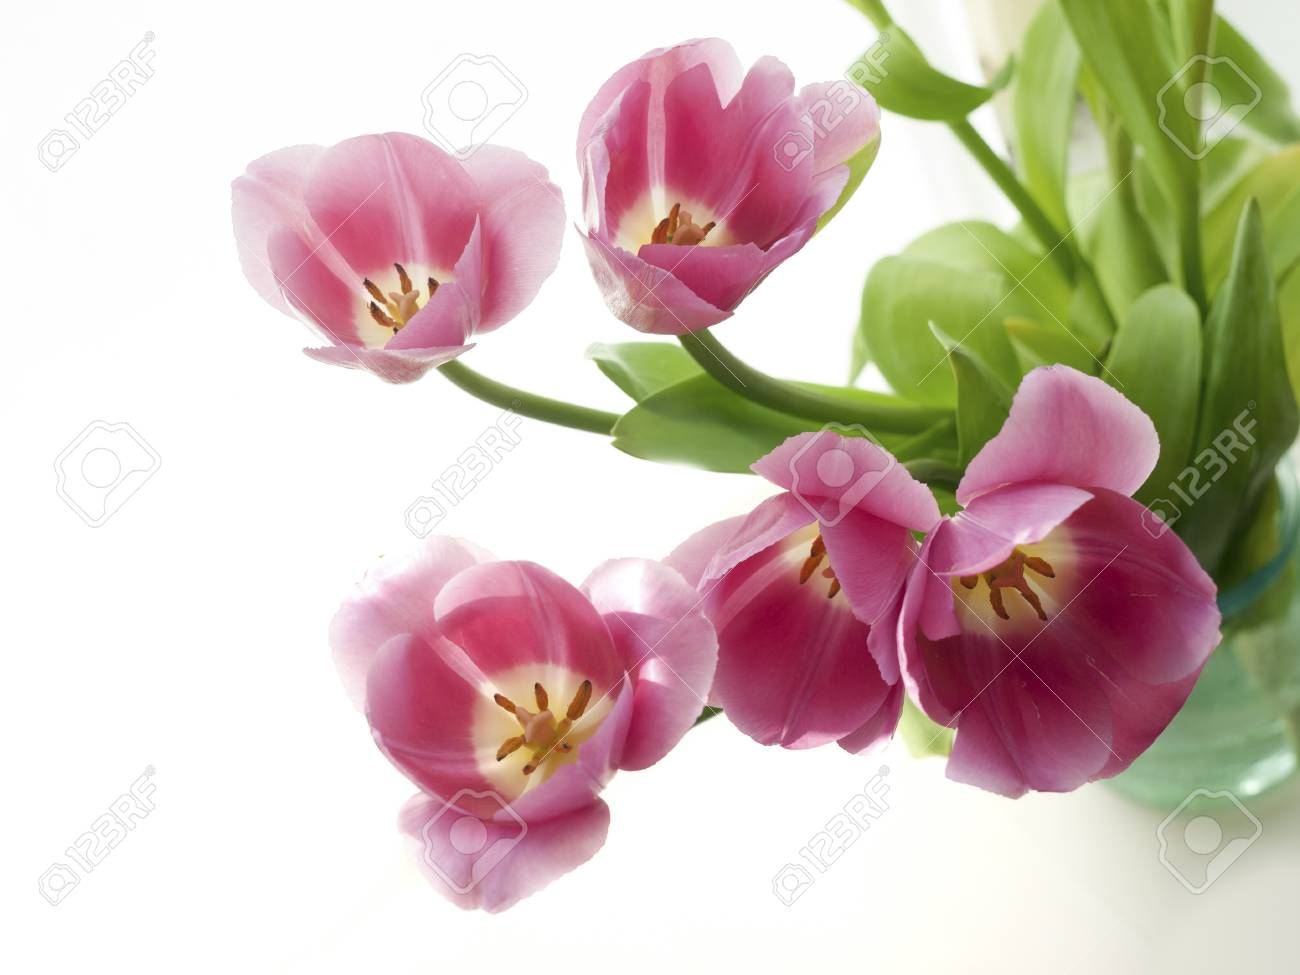 Red tulips on a white background with natural light Stock Photo - 13010858